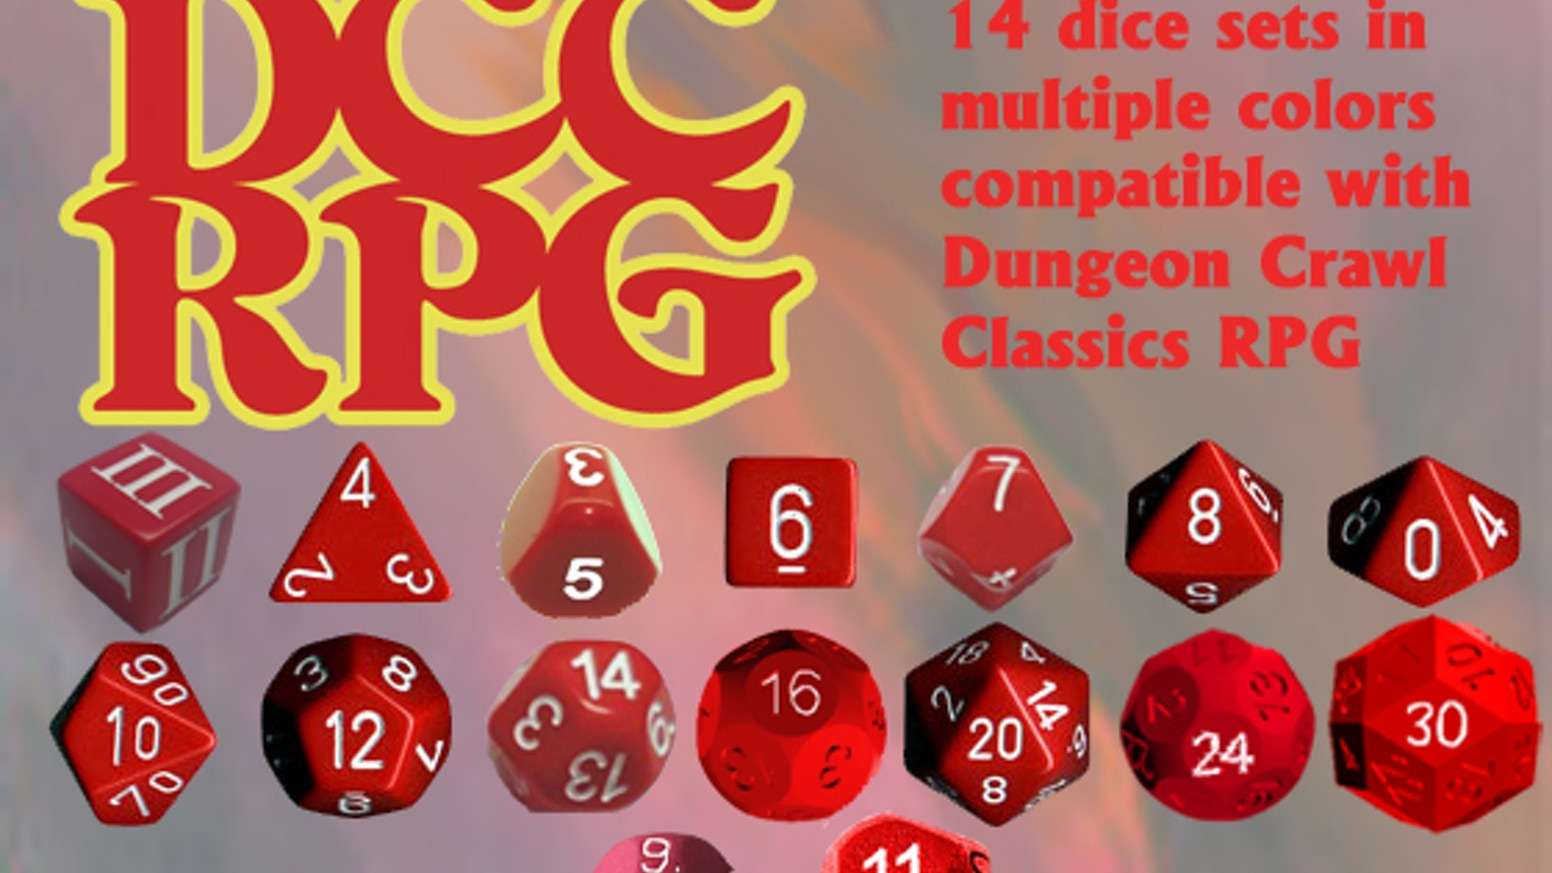 Working to create a full set of the 14 dice compatible with the DCC RPG in 8 colors (and possibly gem dice) along with D9 and D11.